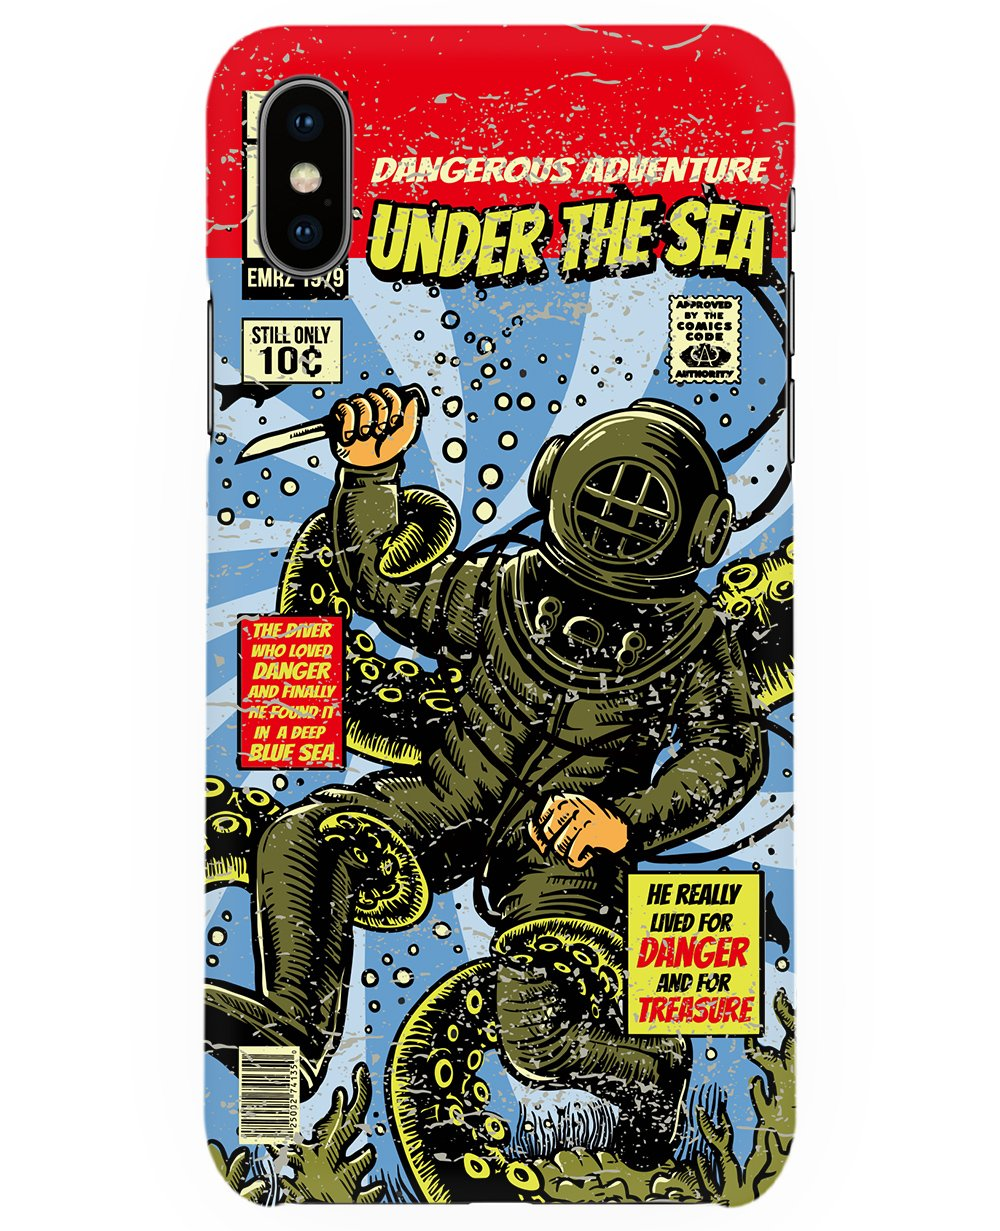 Under The Sea Print Iphone Case - Phone cases - THEYLIVE - BRANMA